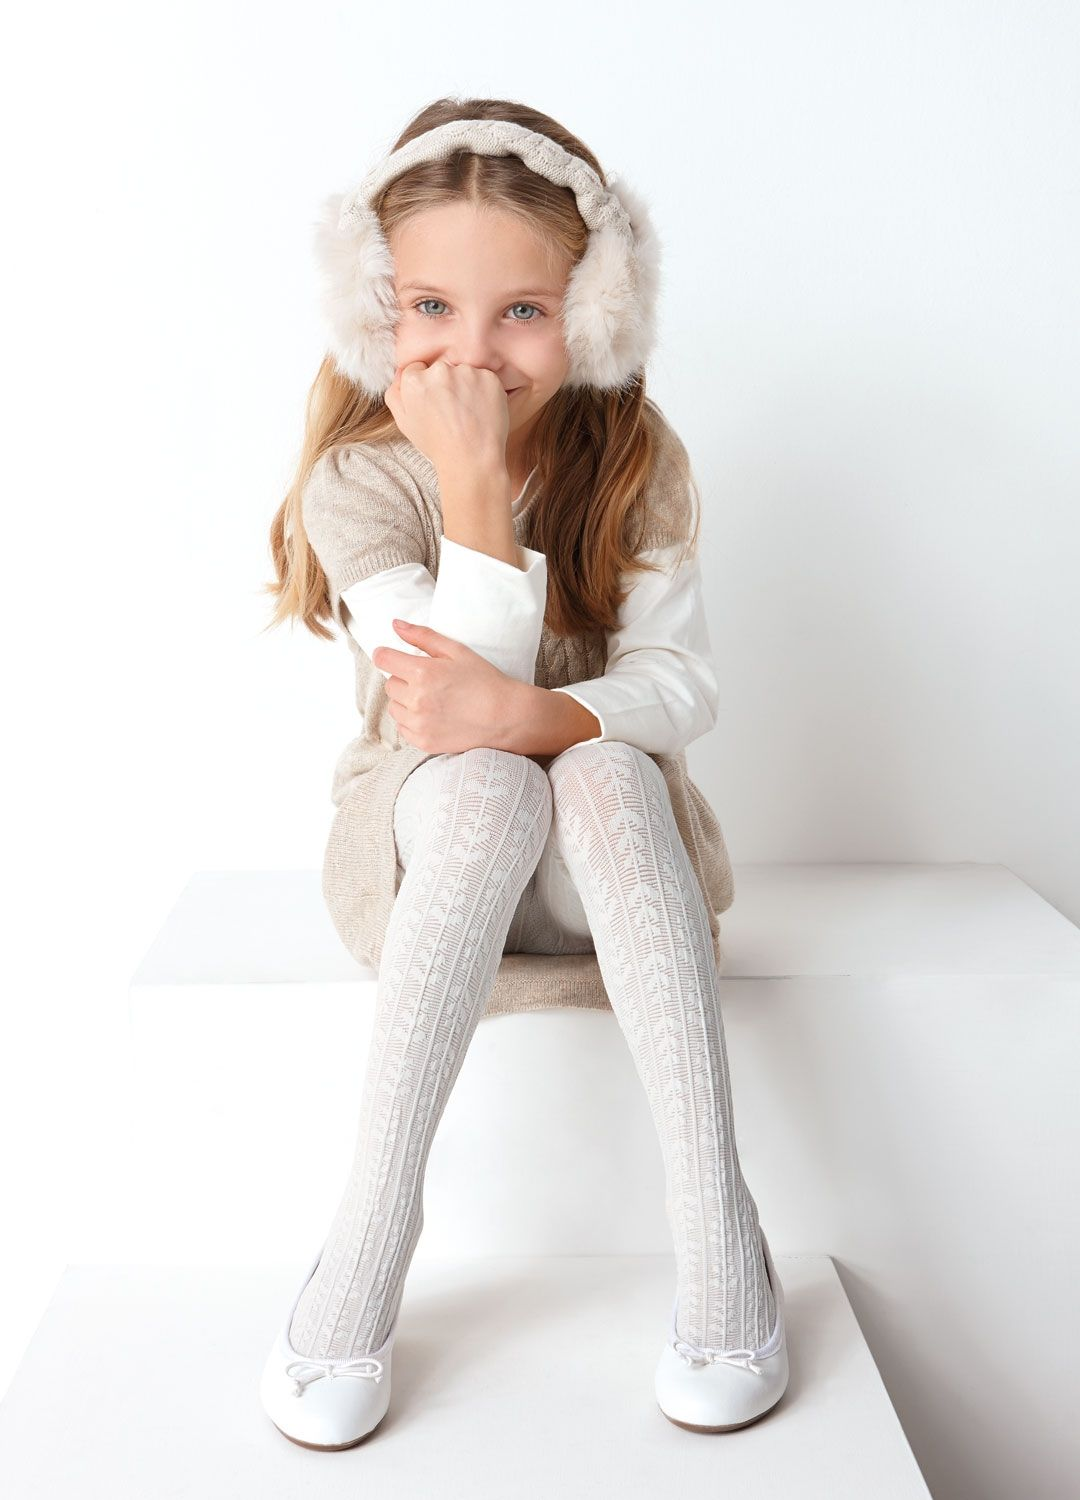 kids in tights Love this White Micromagica Tights - Infant, Toddler & Girls by Franzoni on